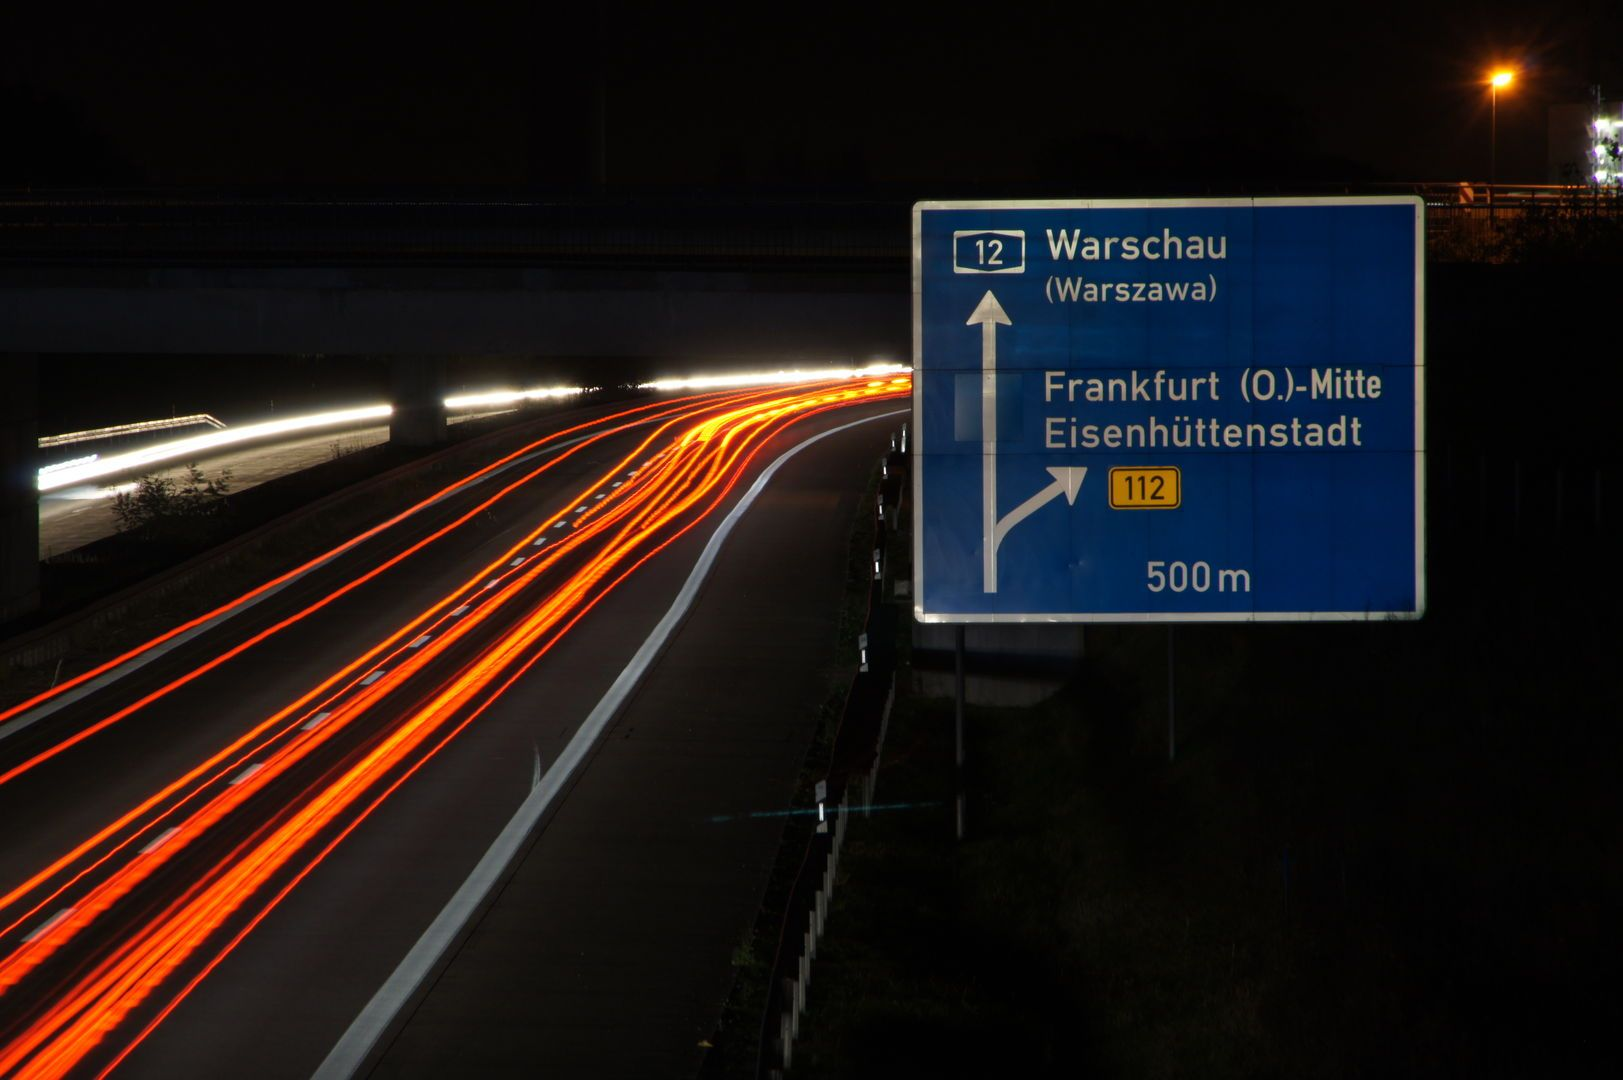 Pin on AutobahnGermany